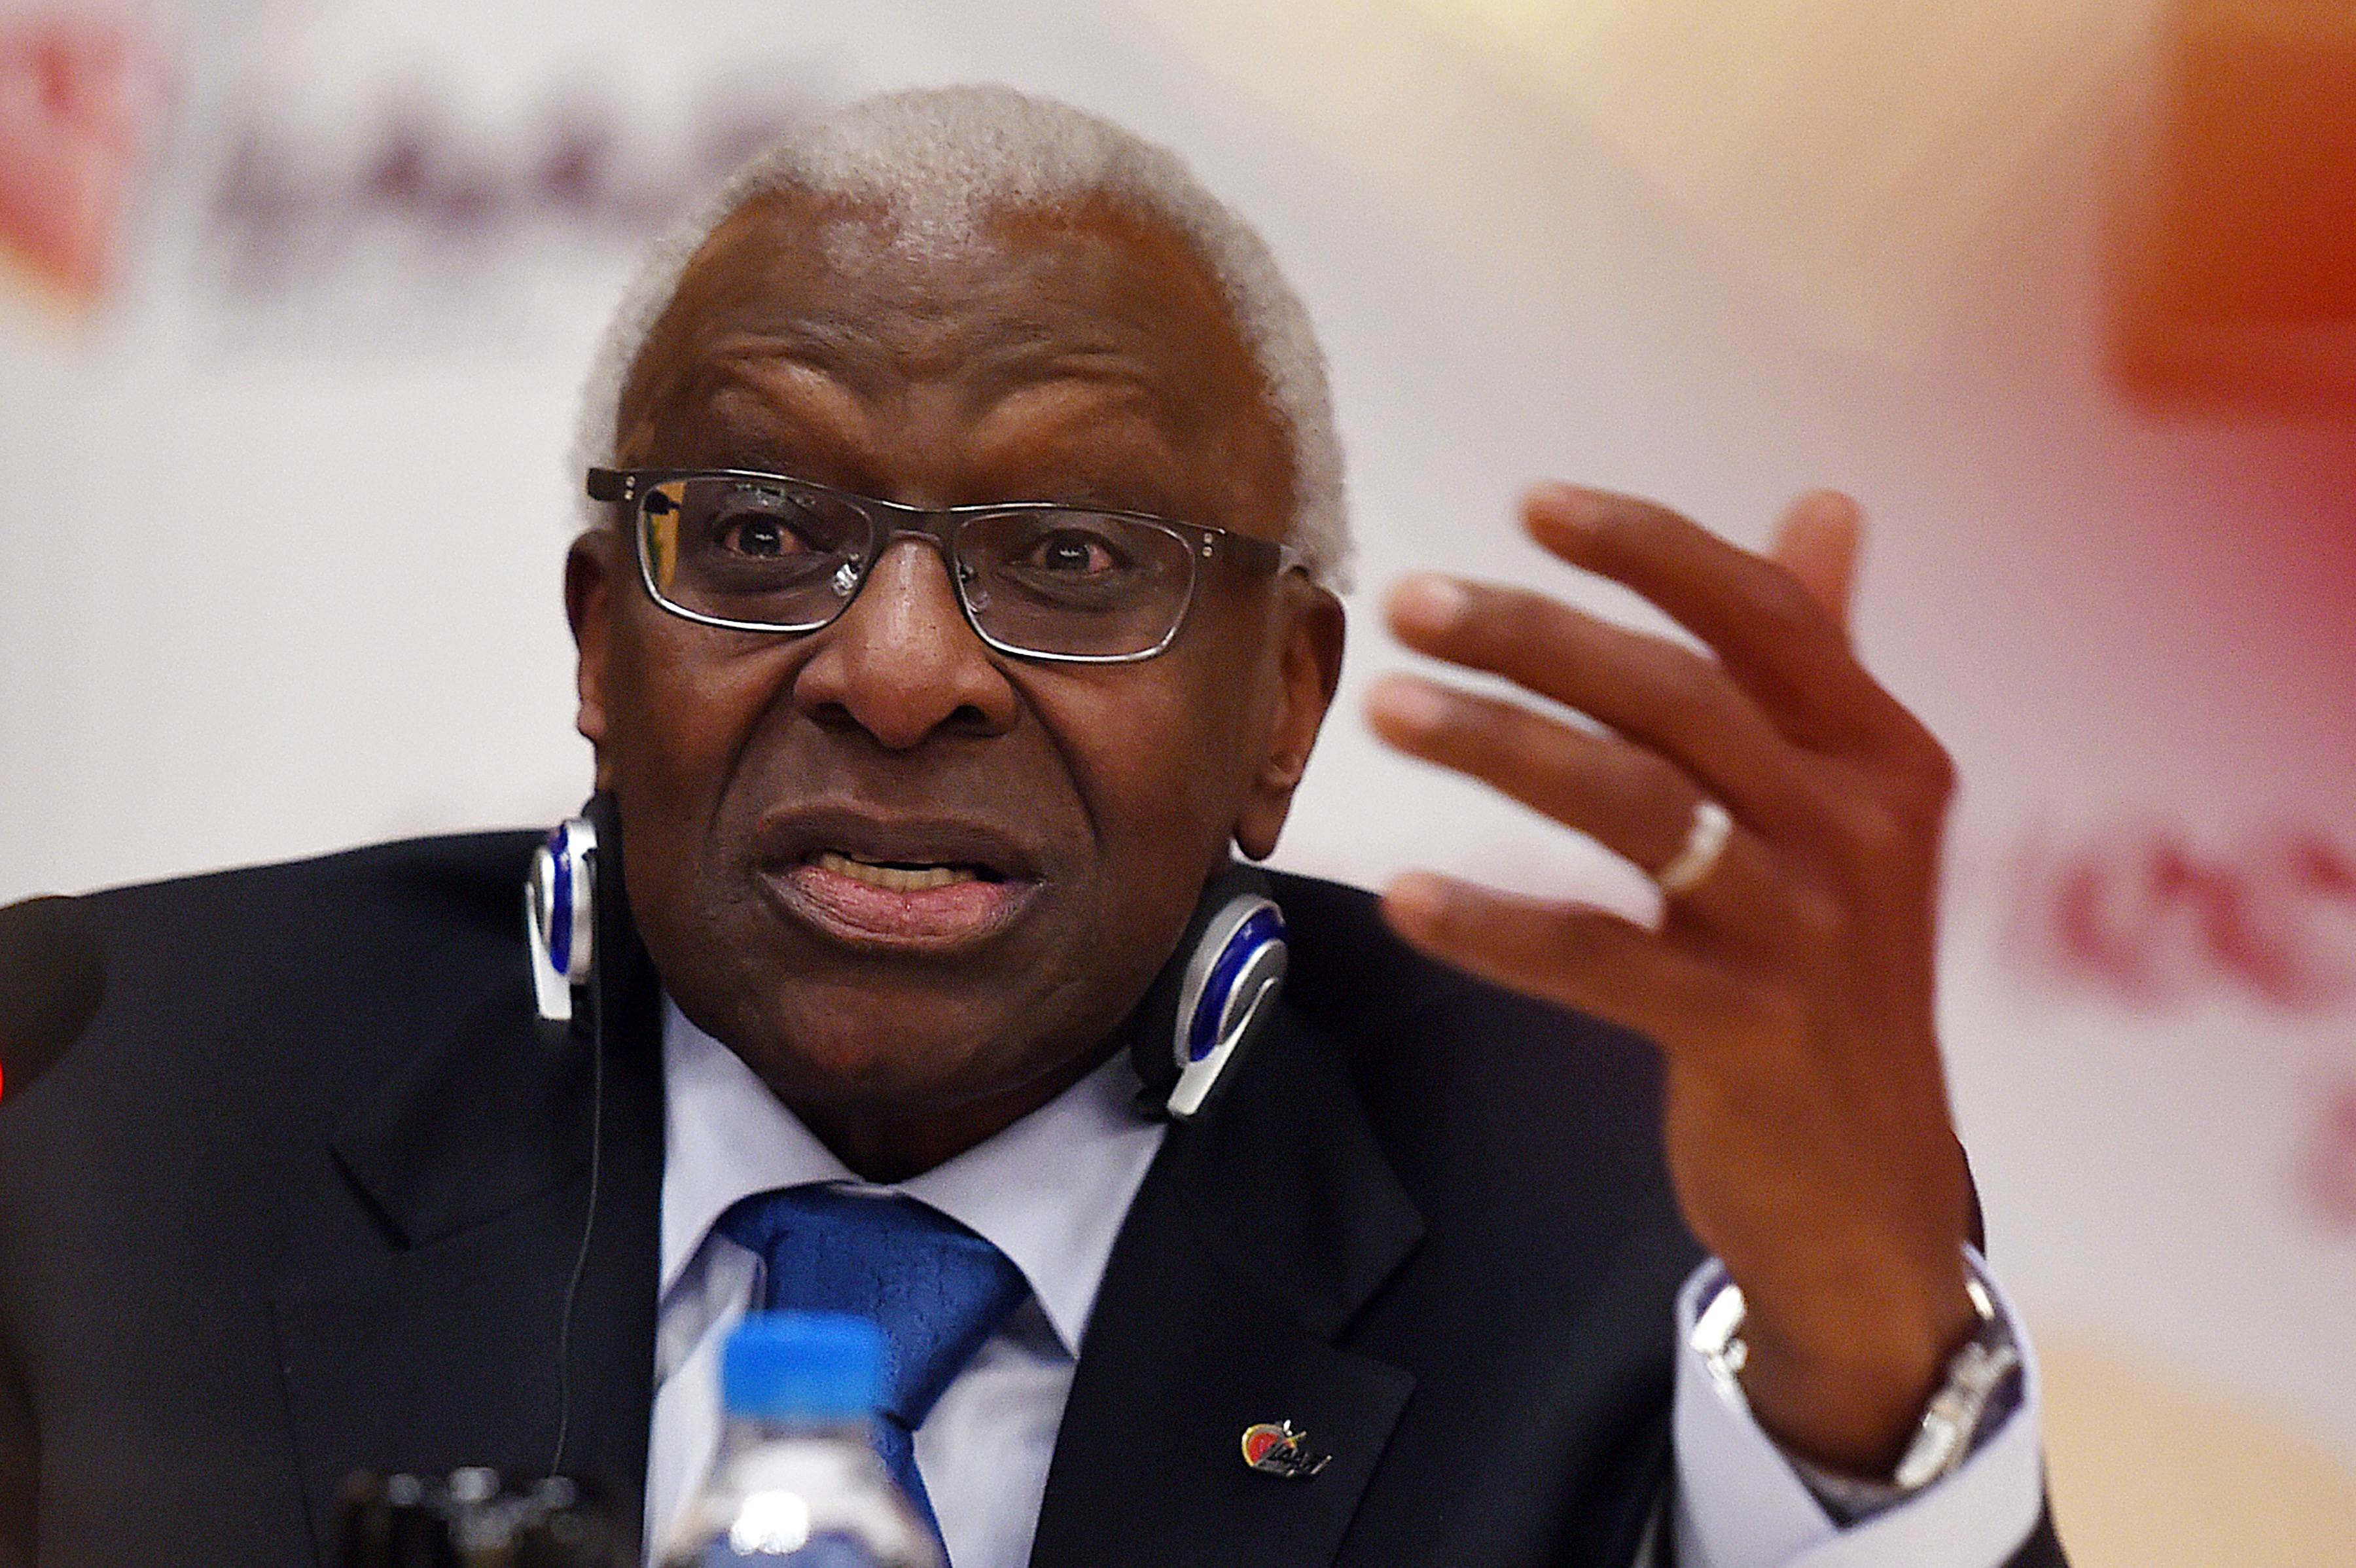 Outgoing International Association of Athletics Federations (IAAF) President Lamine Diack speaking during a press conference in Beijing ahead of the 2015 IAAF World Championships on August 21, 2015. Photo: AFP